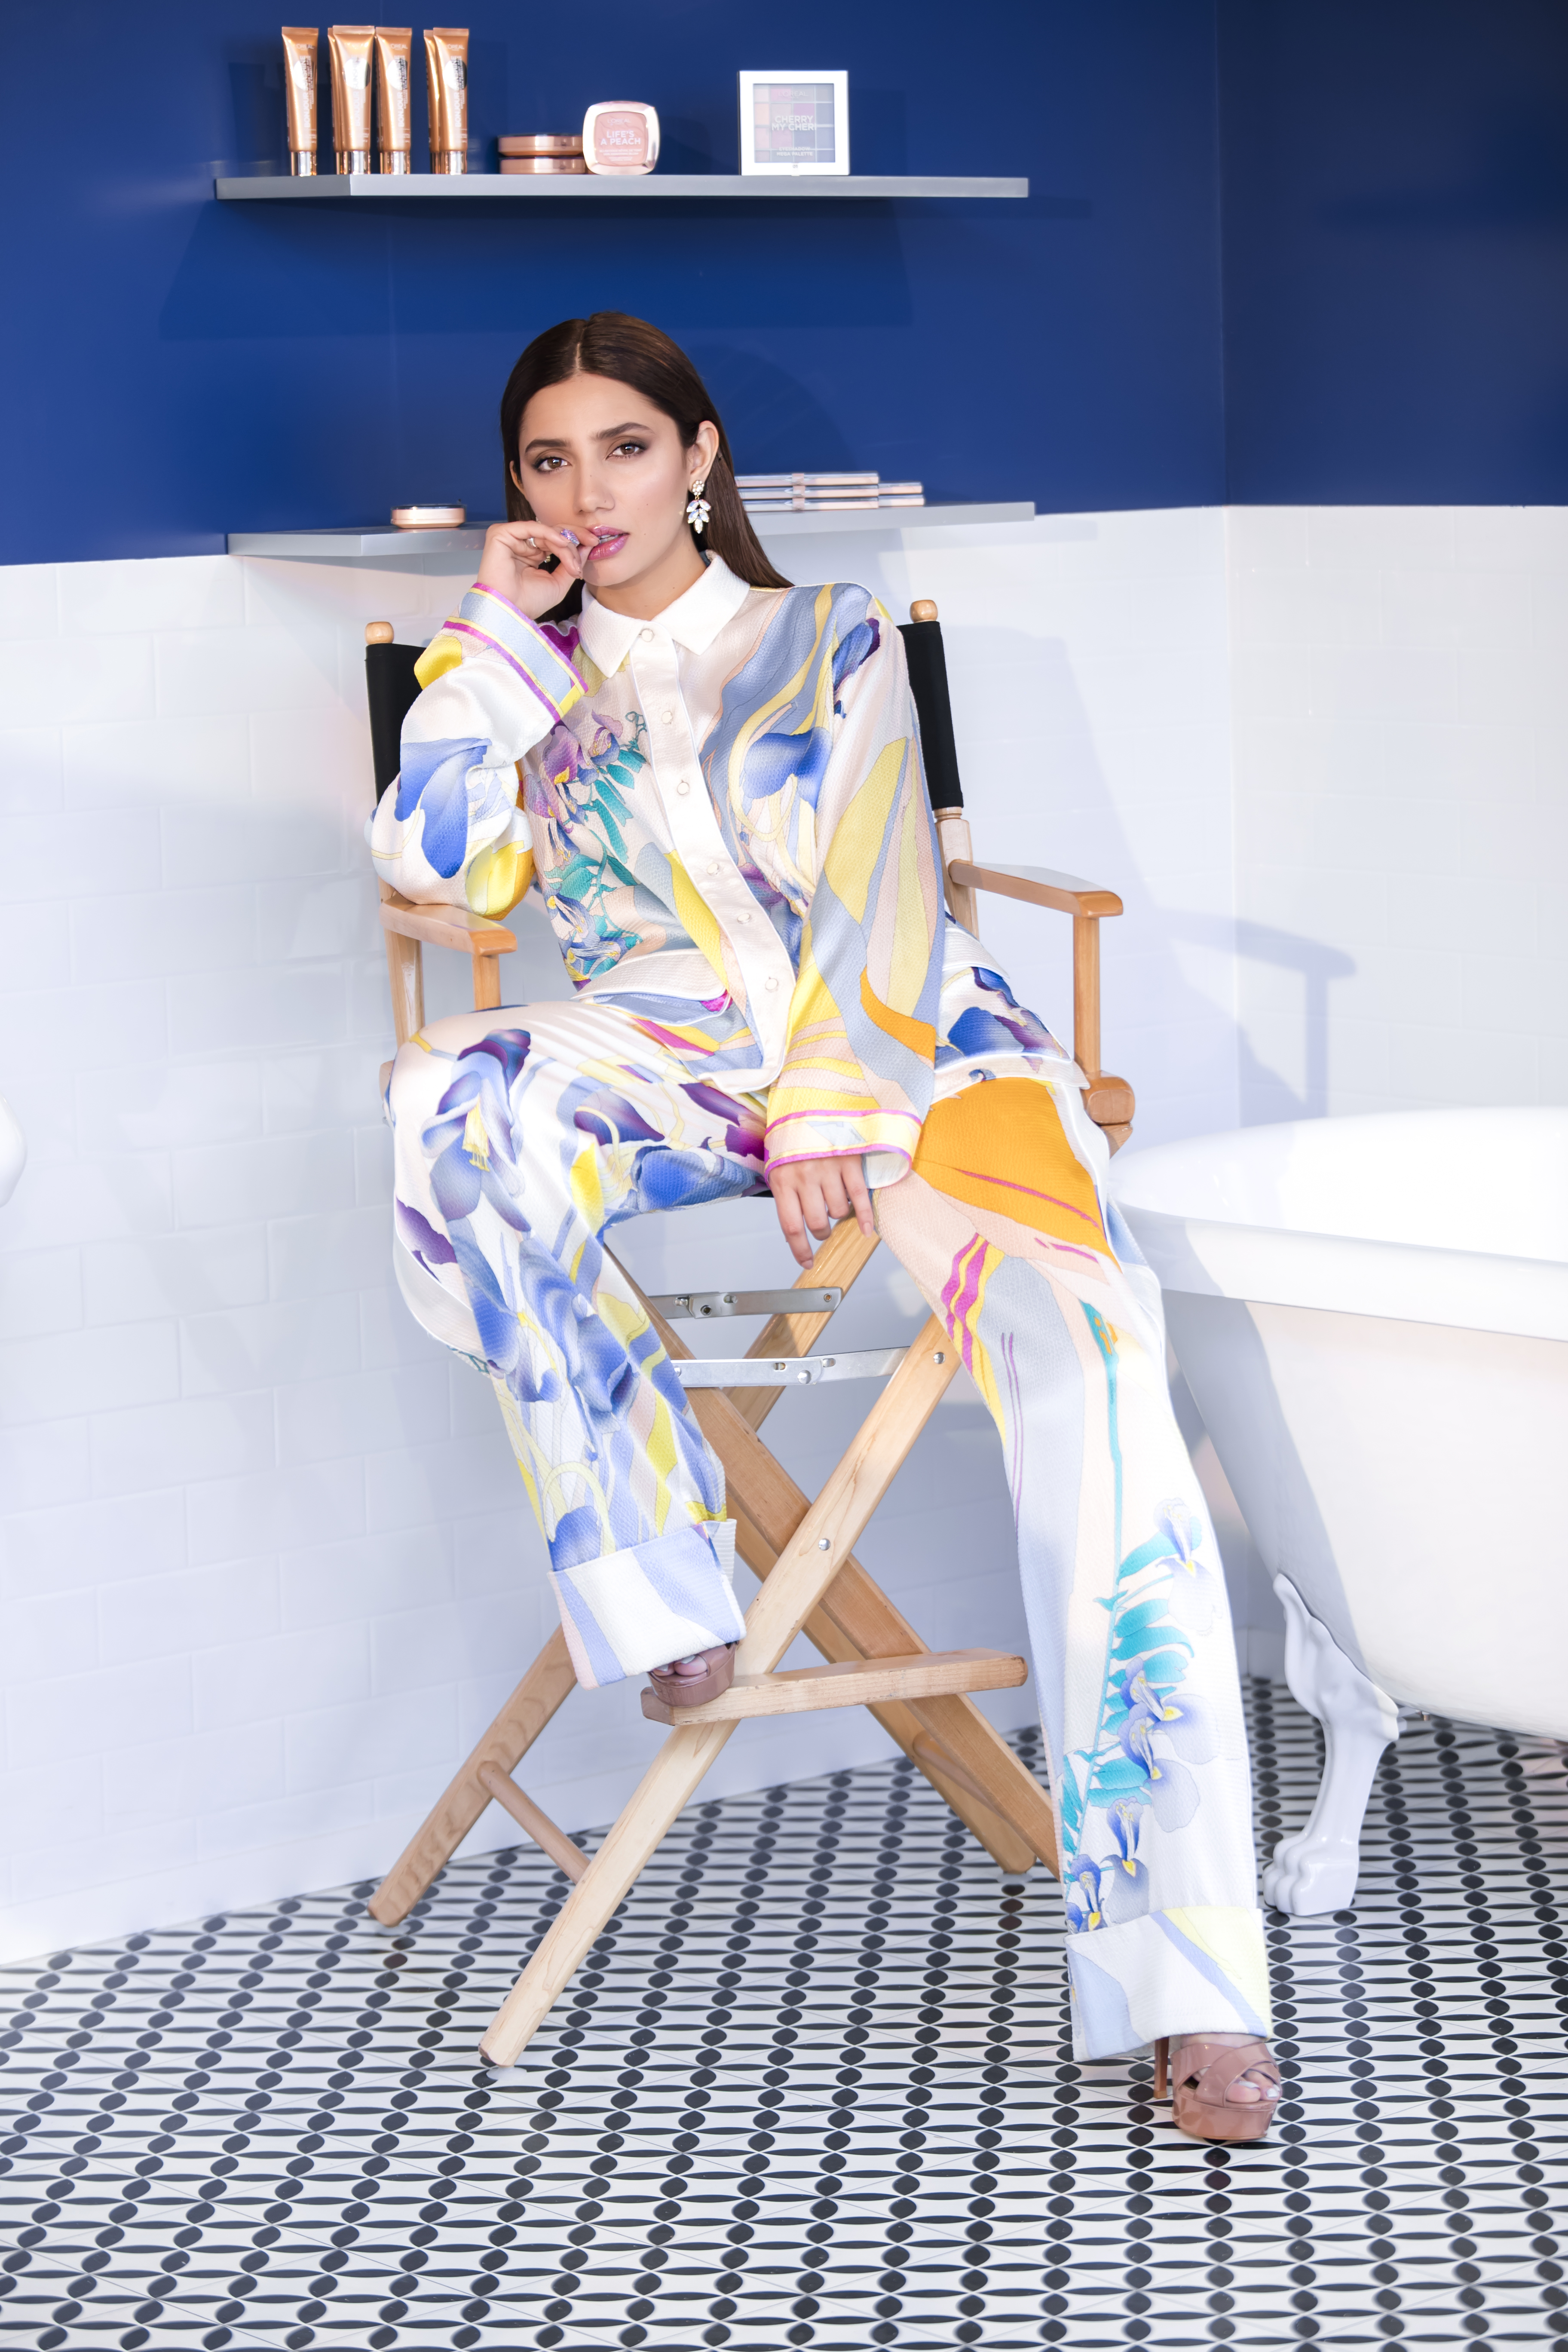 L'Oreal Paris Pakistan Hair Care Spokesperson Mahira Khan in Cannes wearing Leonard Paris